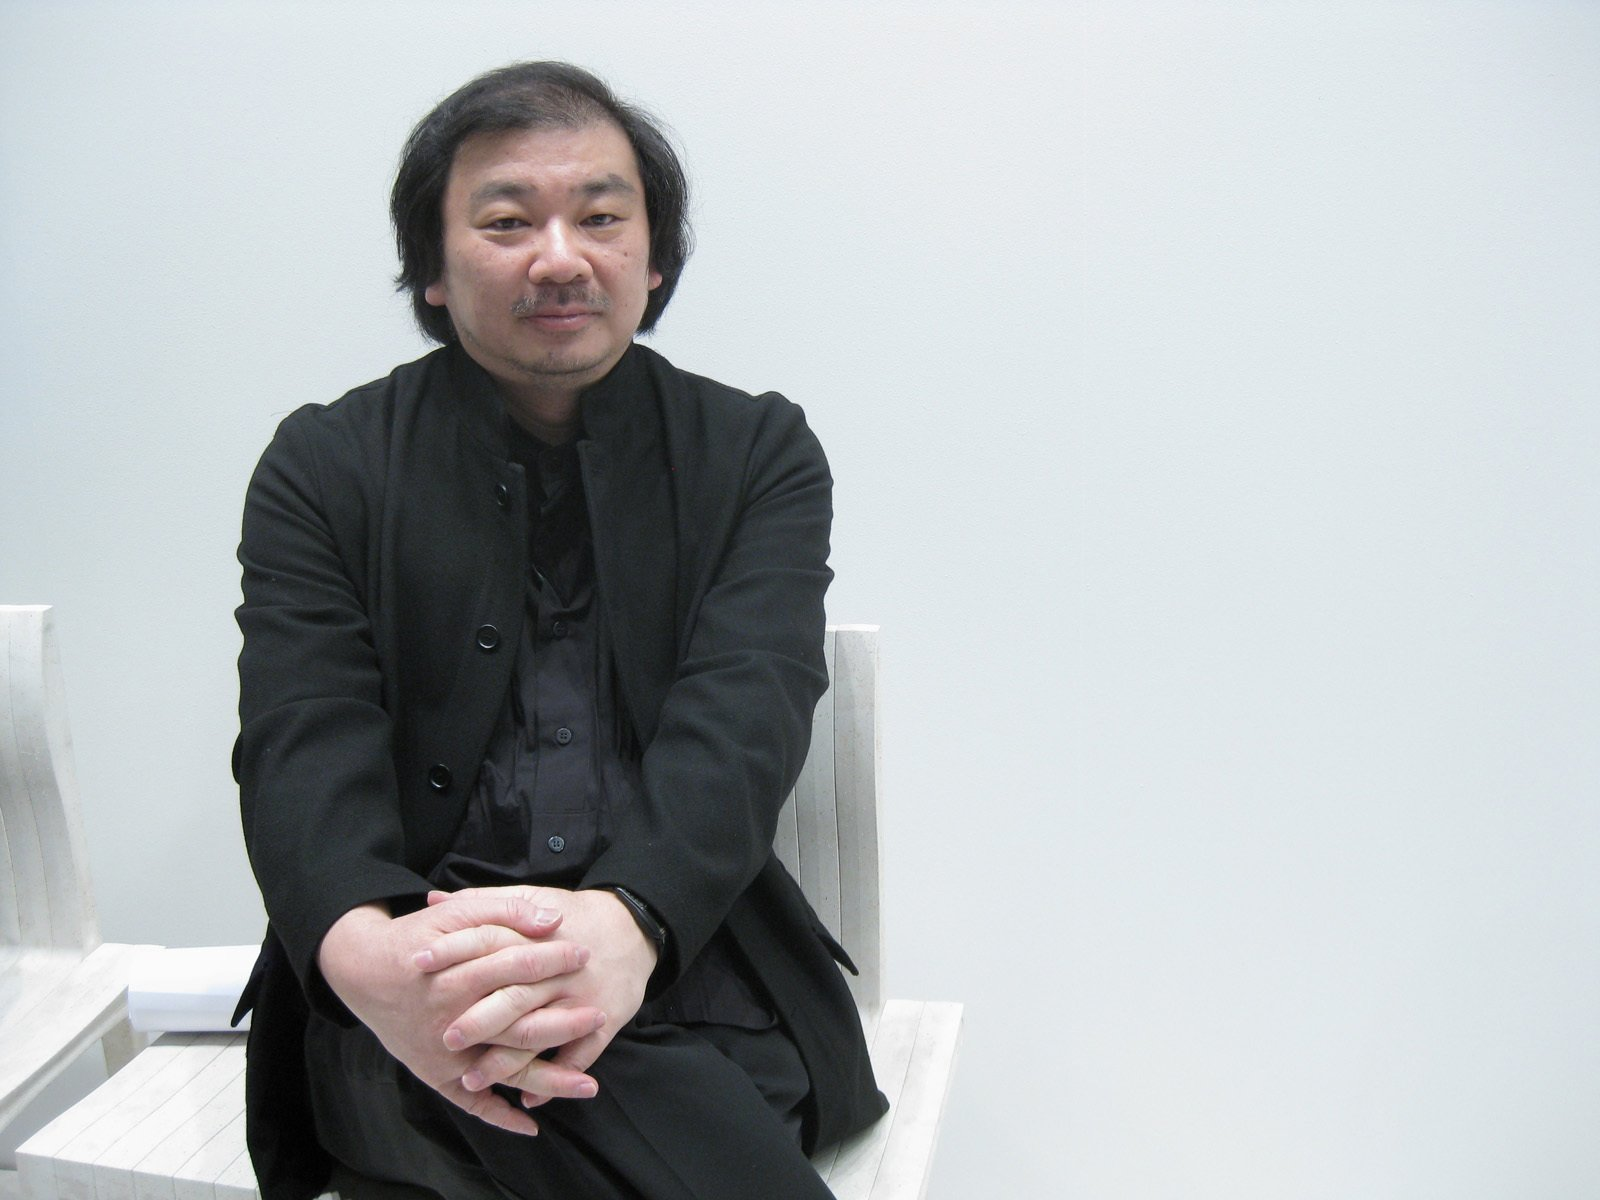 Photo 1 of 4 in From Milan: Q&A with Shigeru Ban